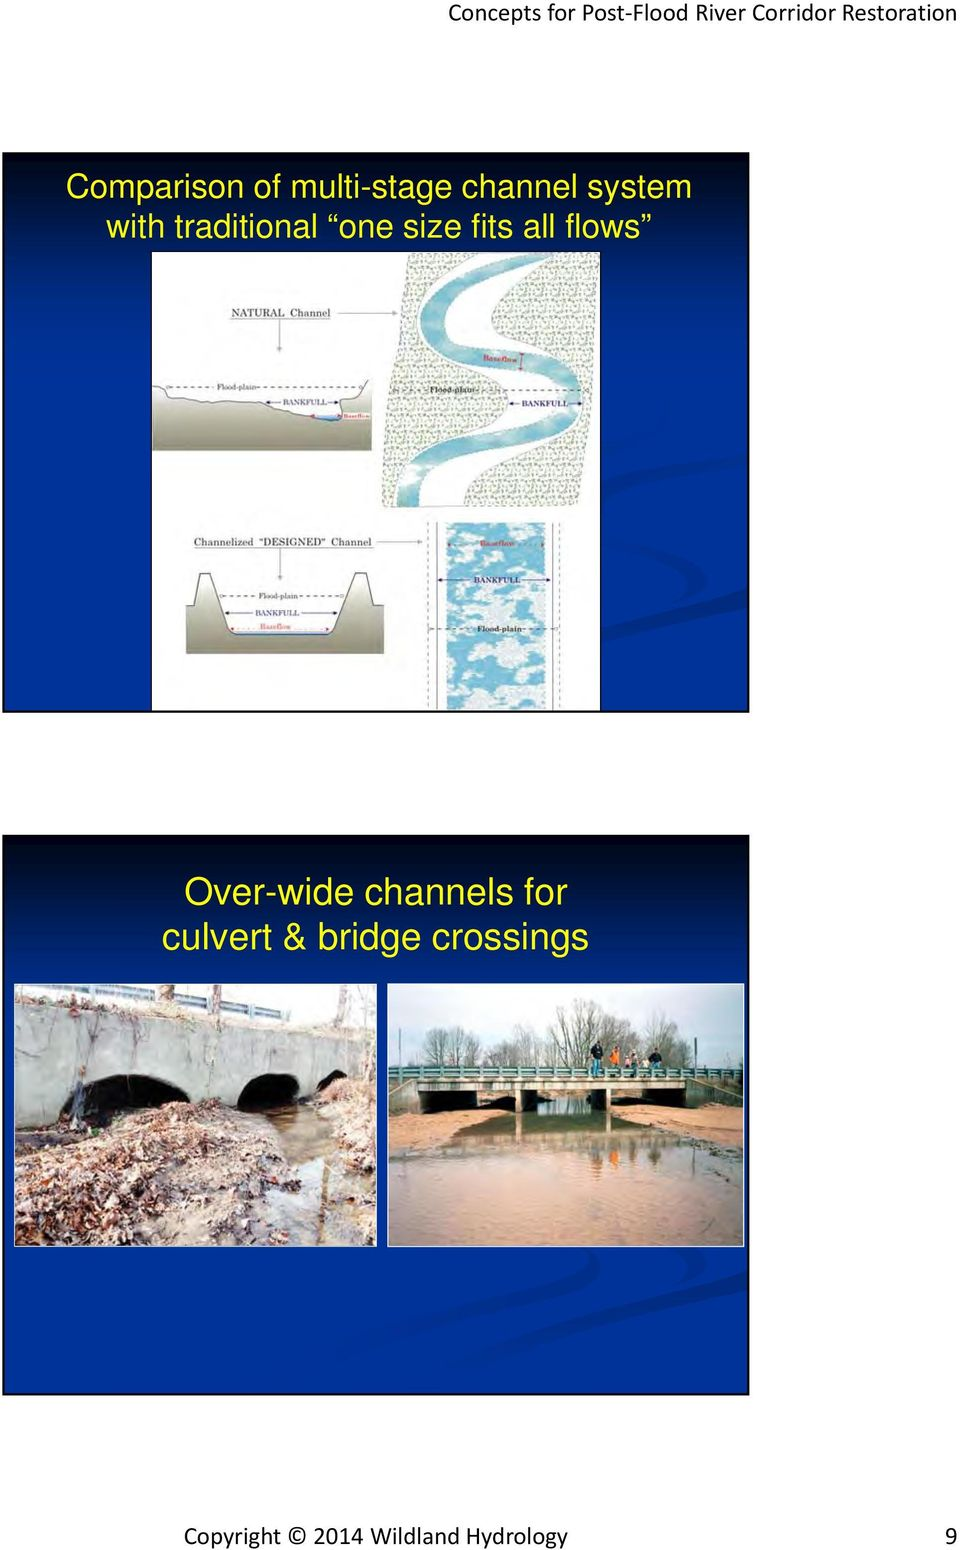 Over-wide channels for culvert & bridge